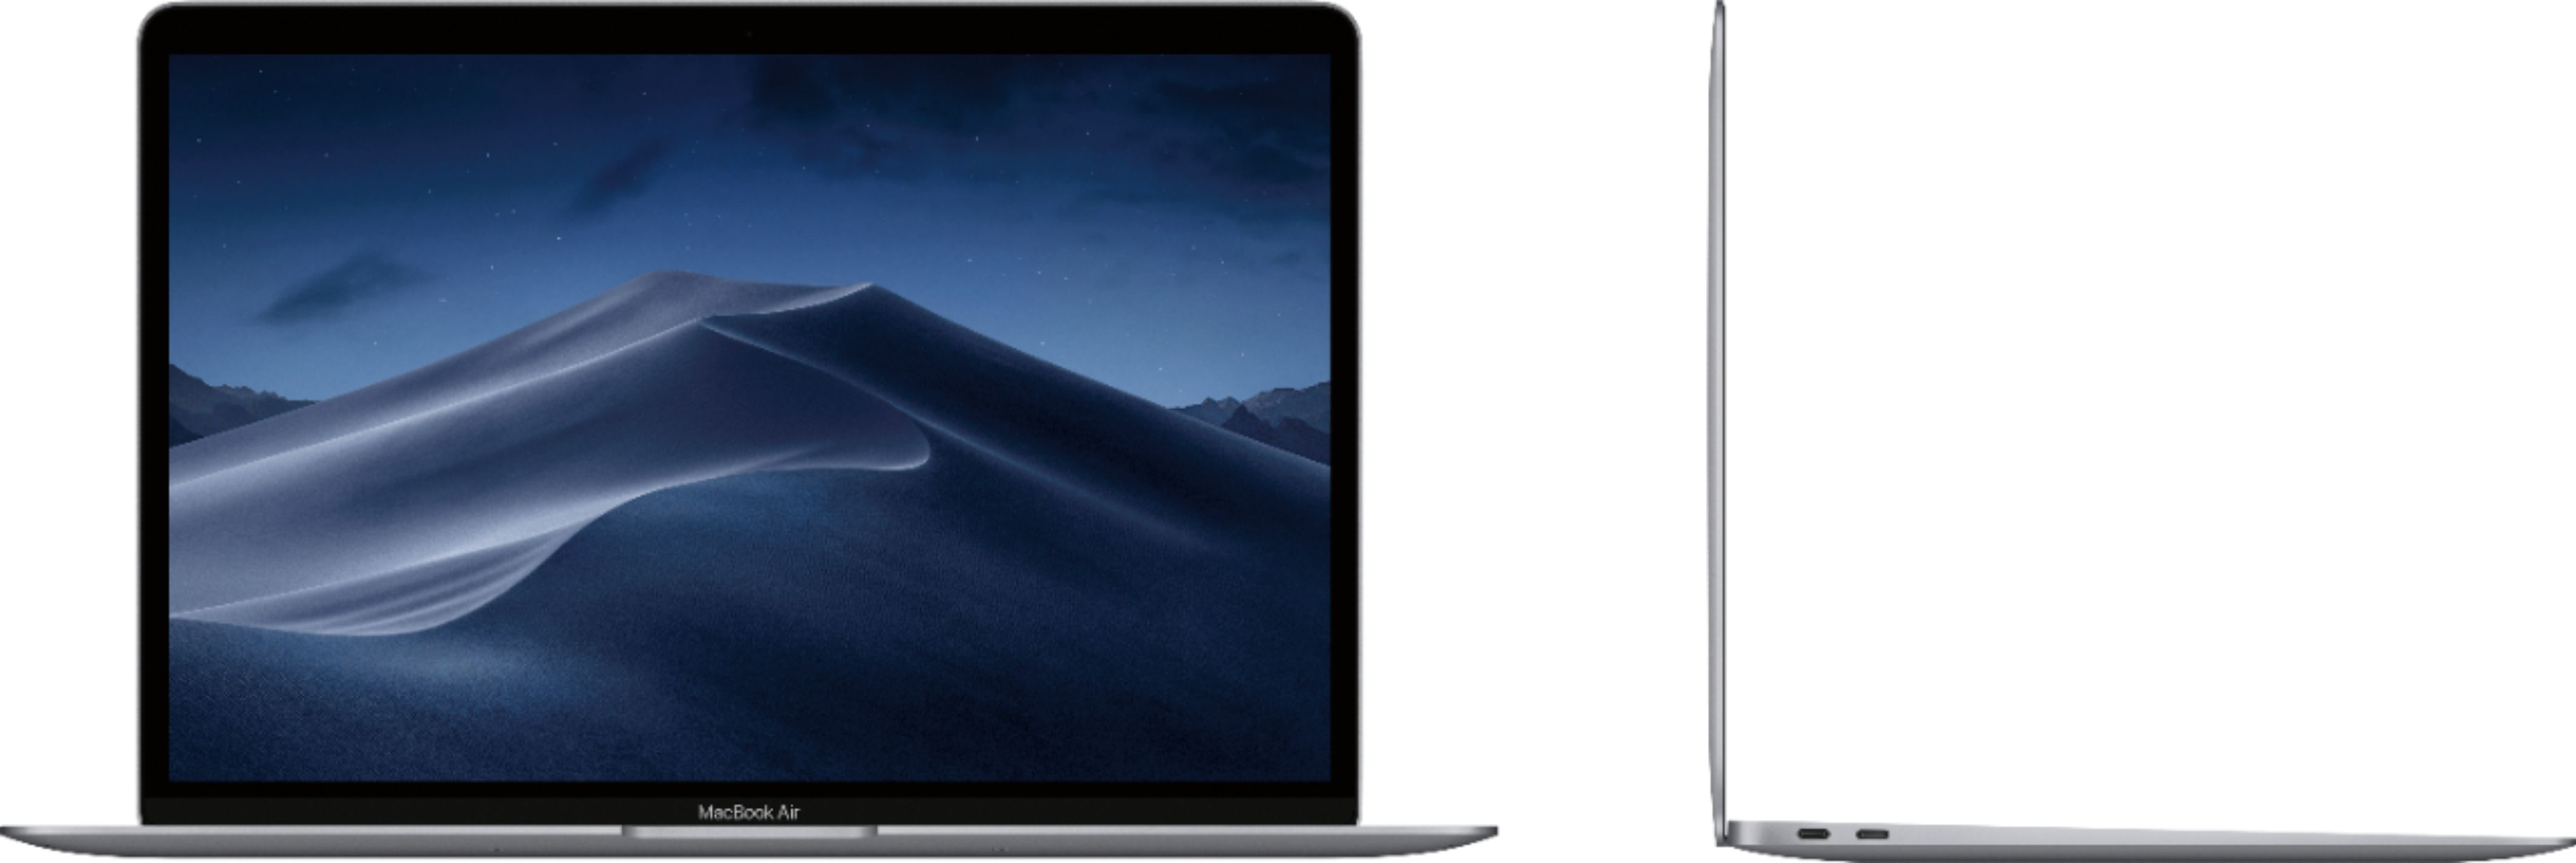 """Alt View Zoom 12. Apple - MacBook Air 13.3"""" Laptop with Touch ID - Intel Core i5 - 8GB Memory - 128GB Solid State Drive - Space Gray."""